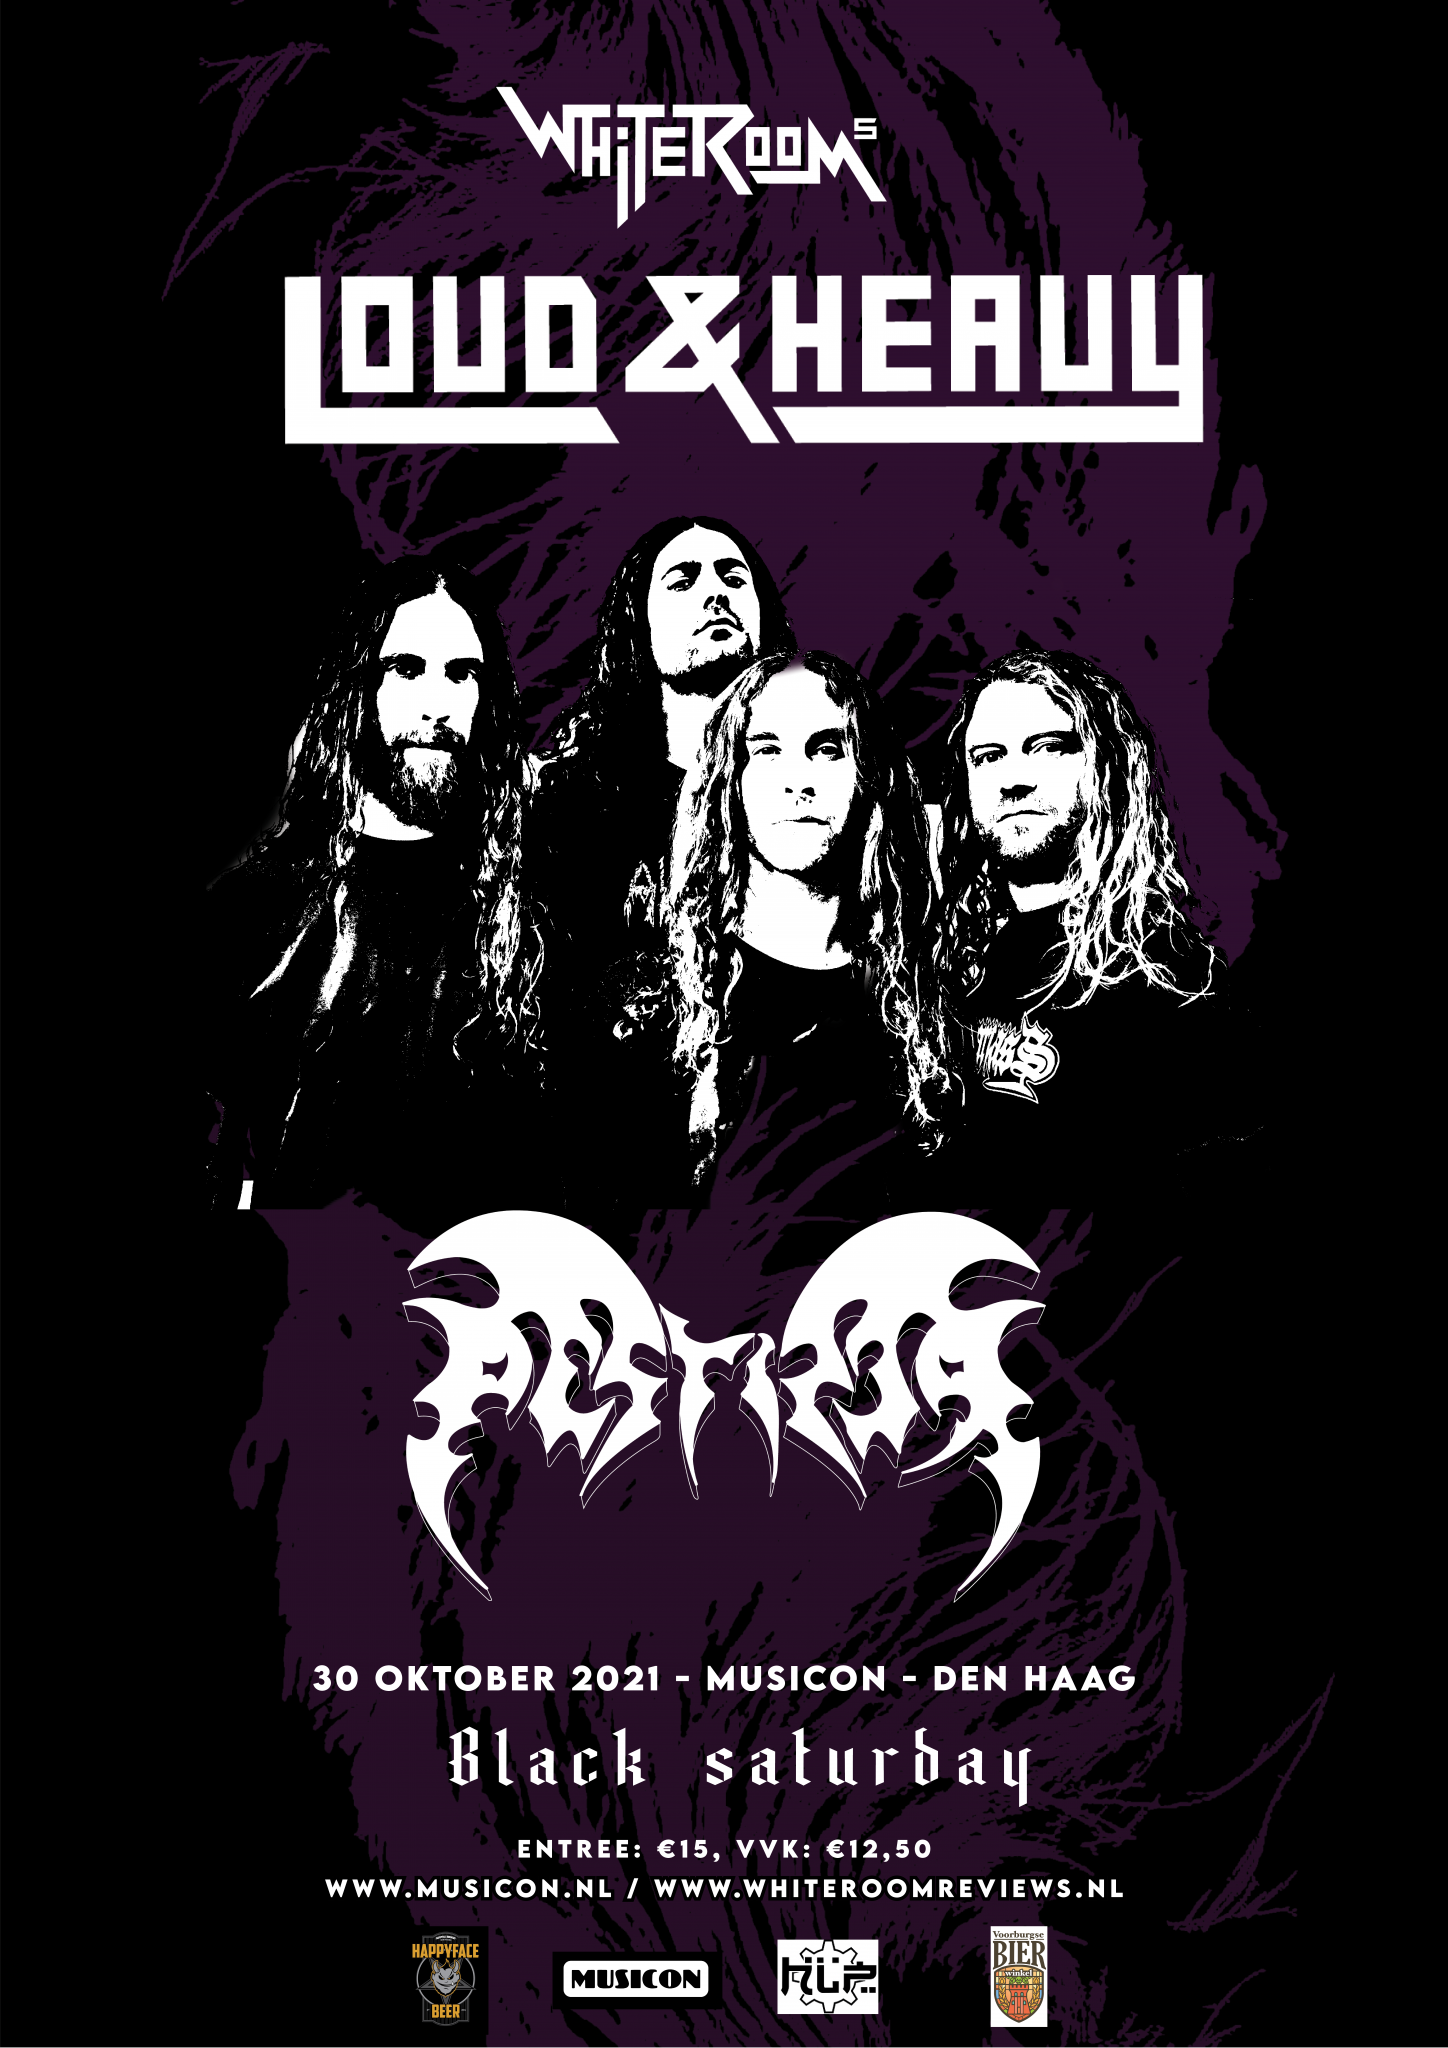 White Room's Loud & Heavy main posterss3